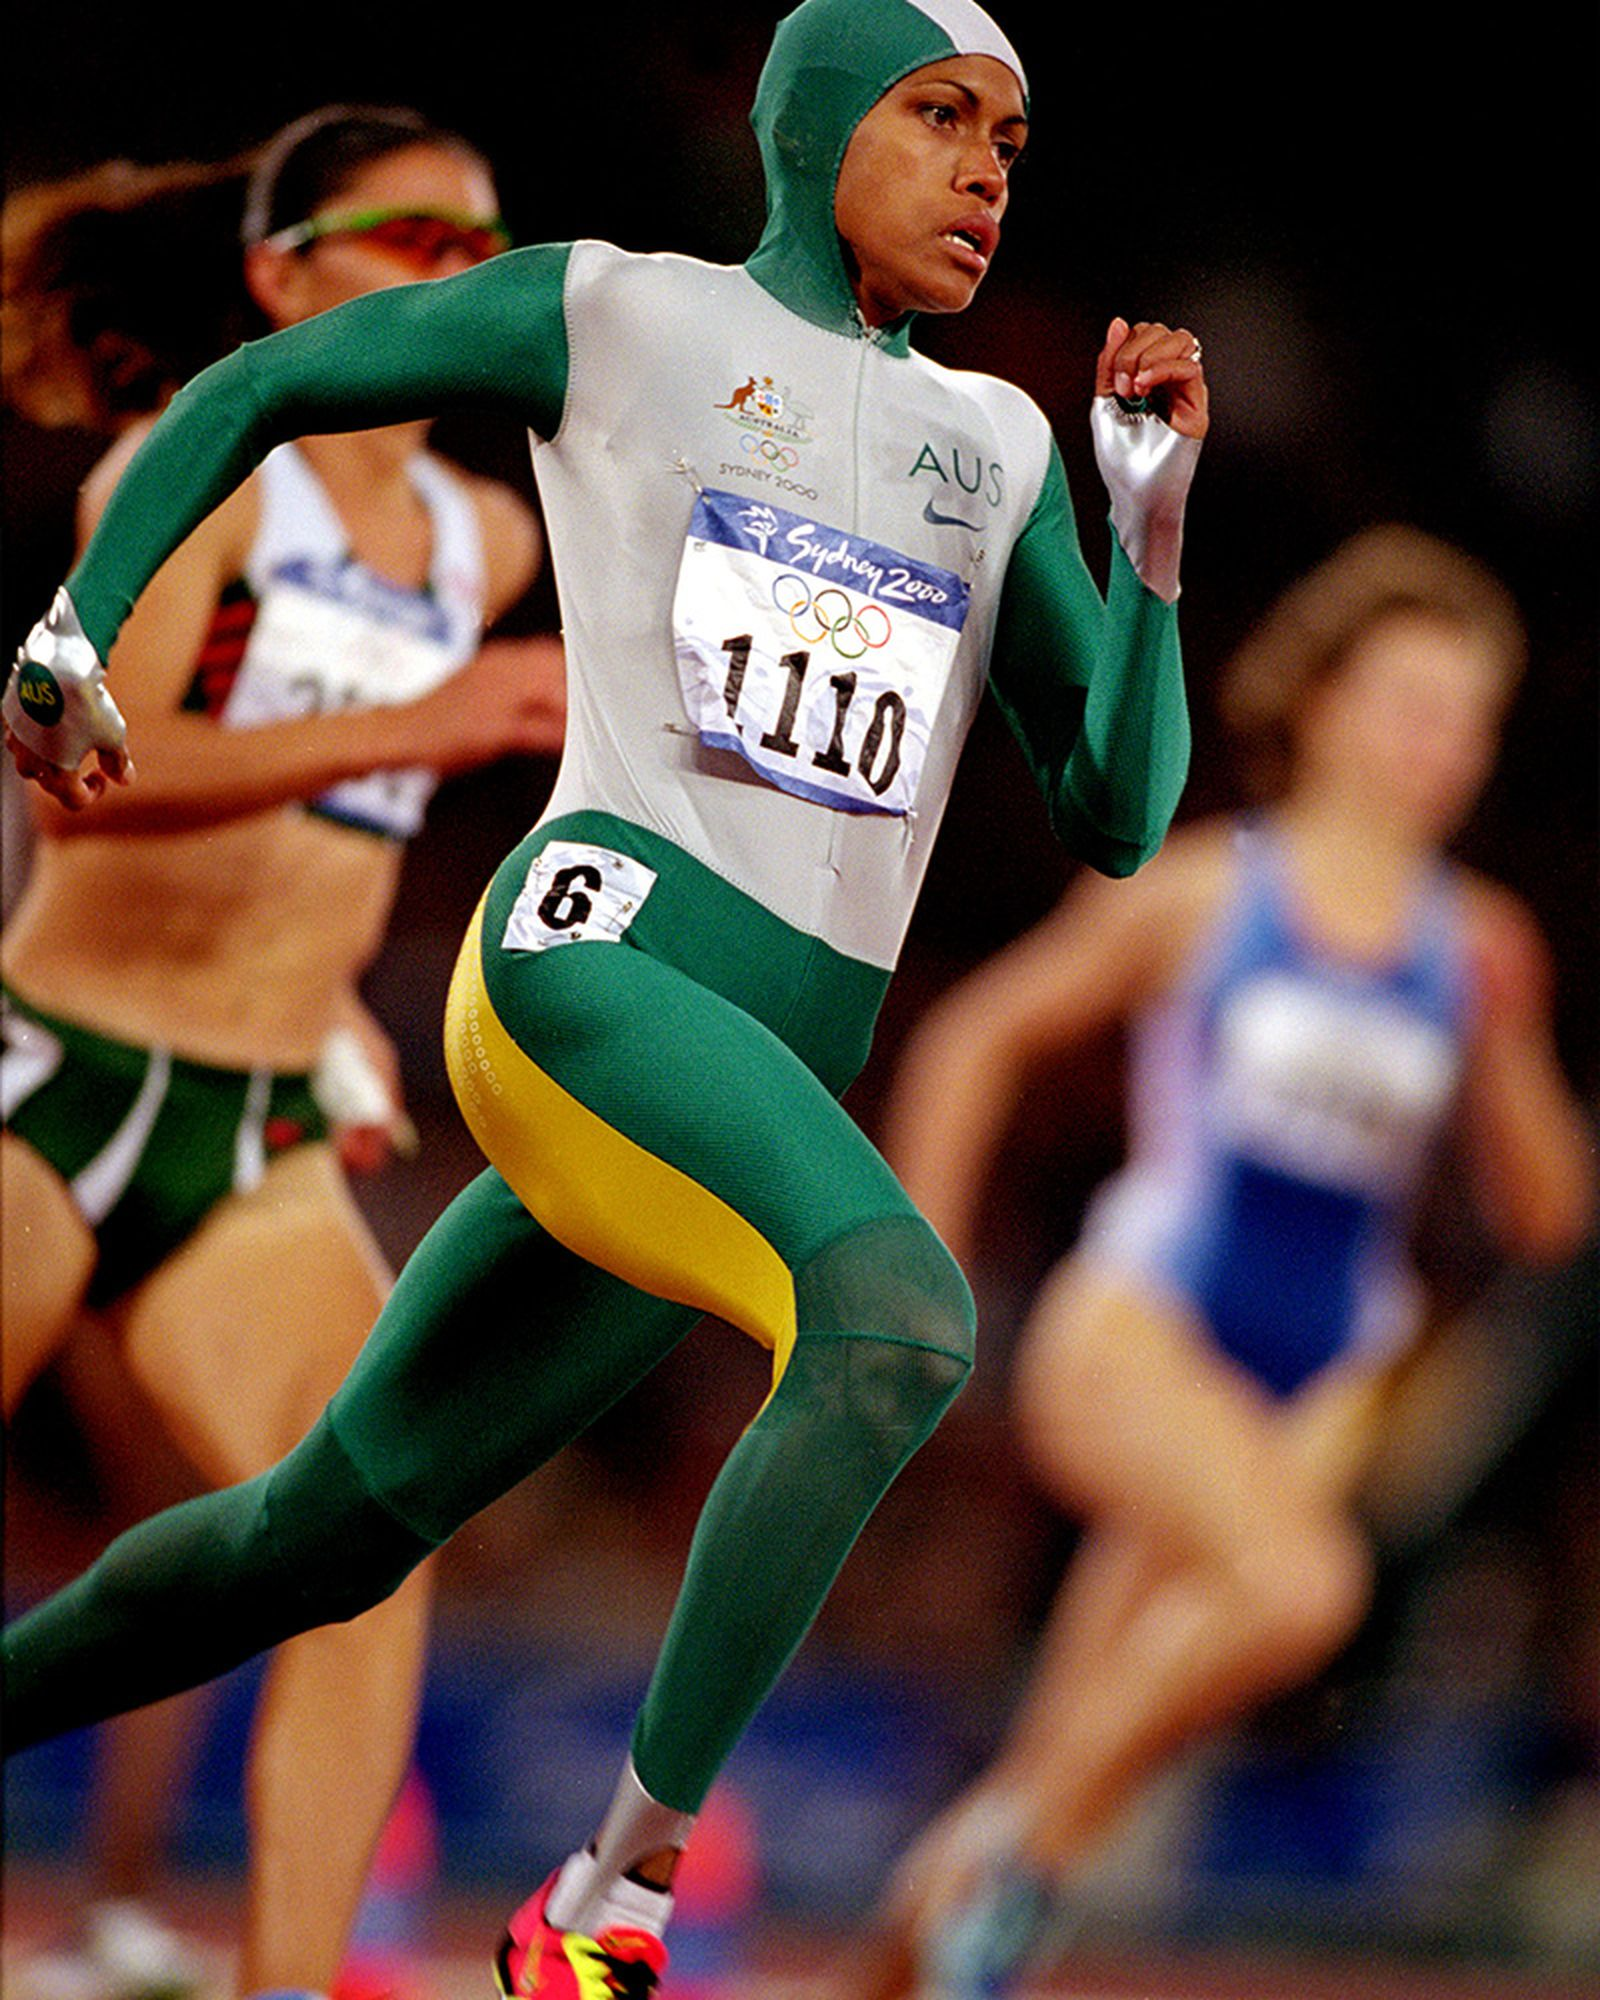 most-iconic-olympics-fashion-moments-002